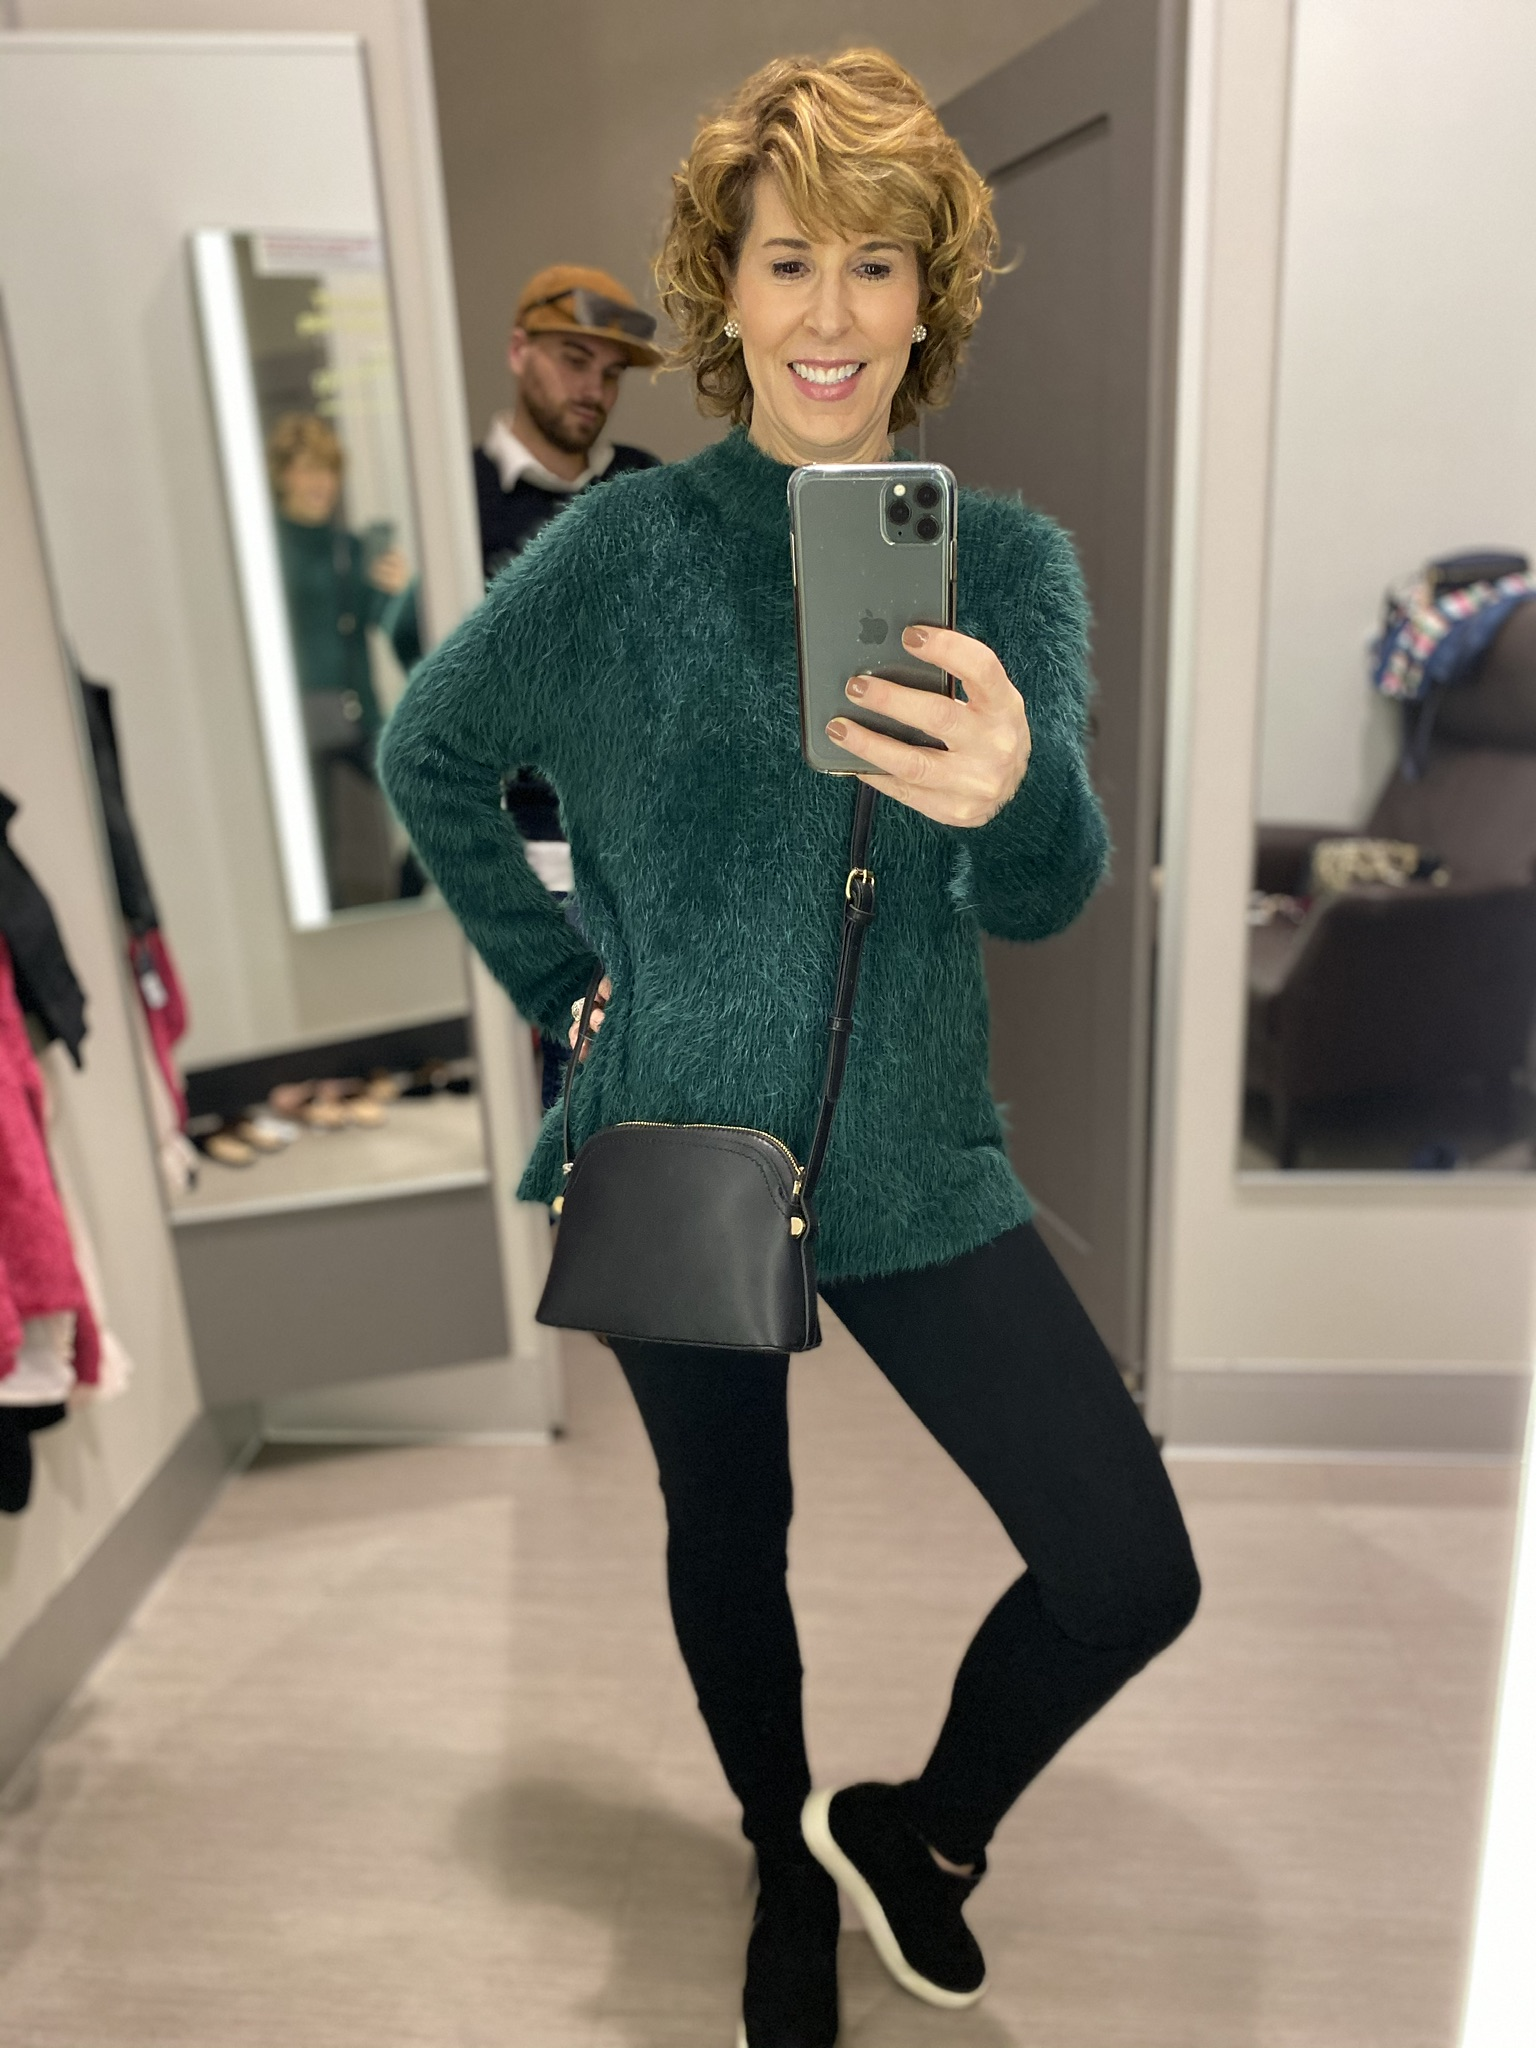 dressing room selfie of woman in long green fuzzy sweater, black leggings and black sneakers